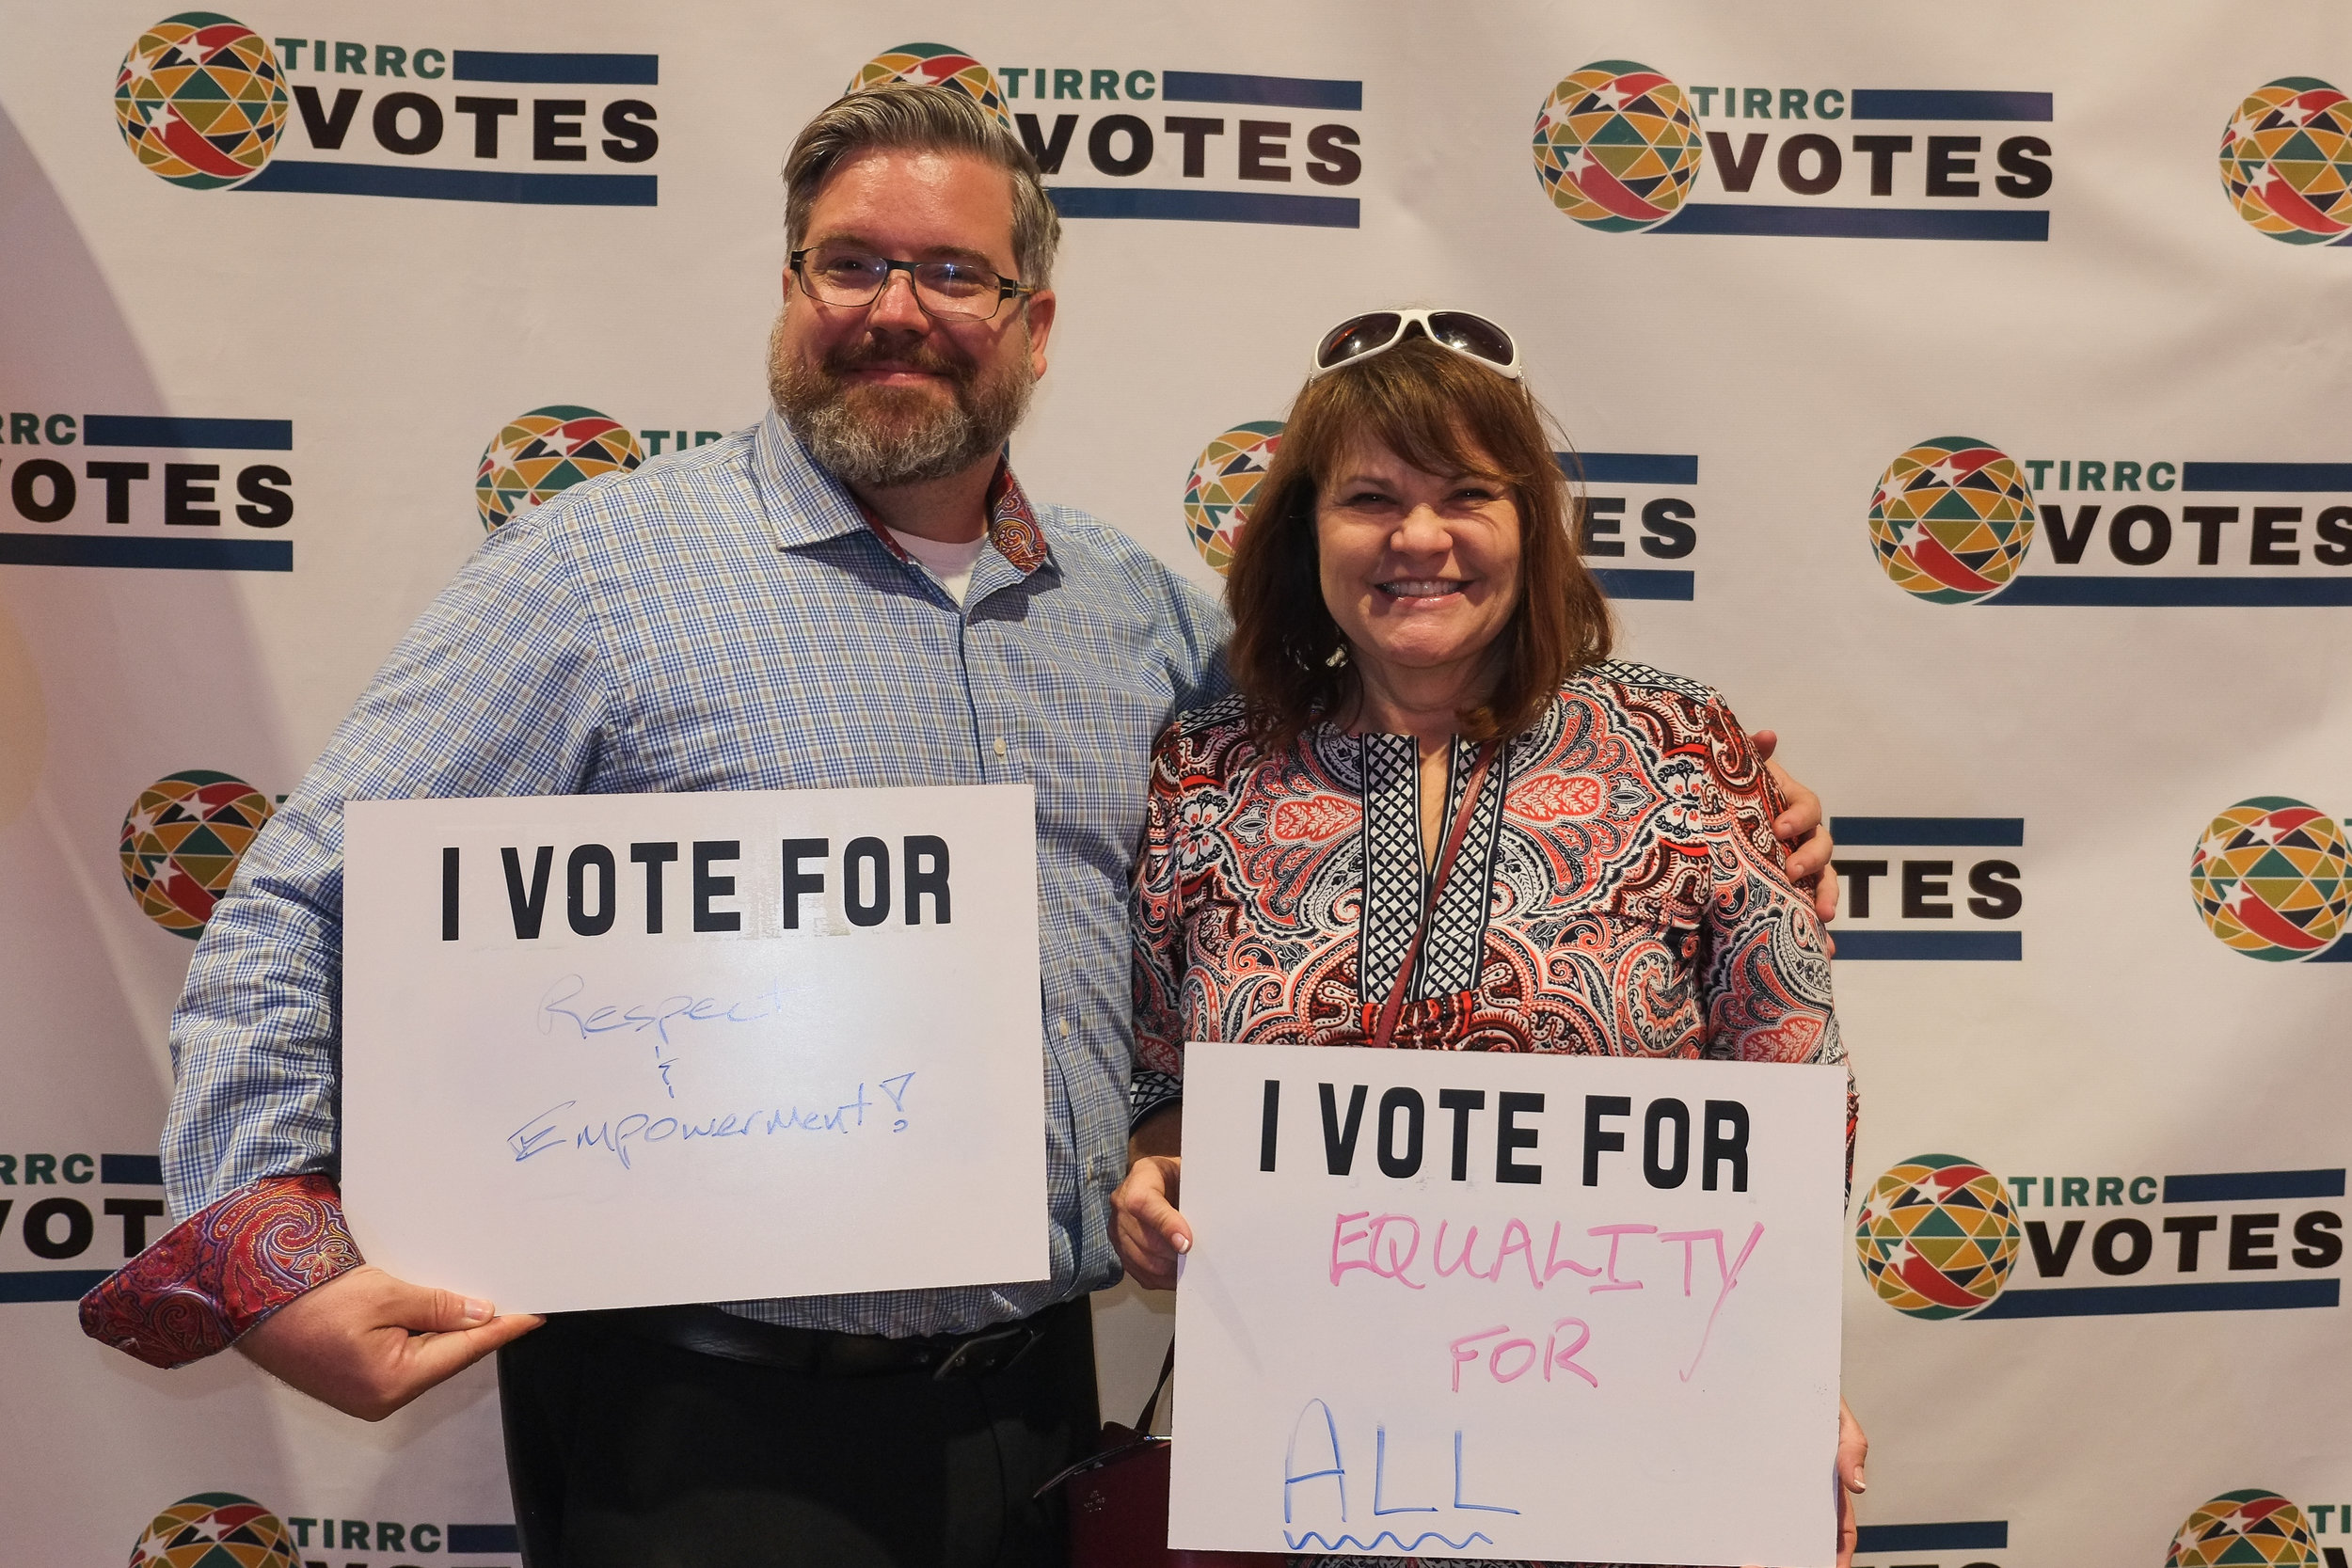 TIRRCVotes-PhotoBooth-37.jpg